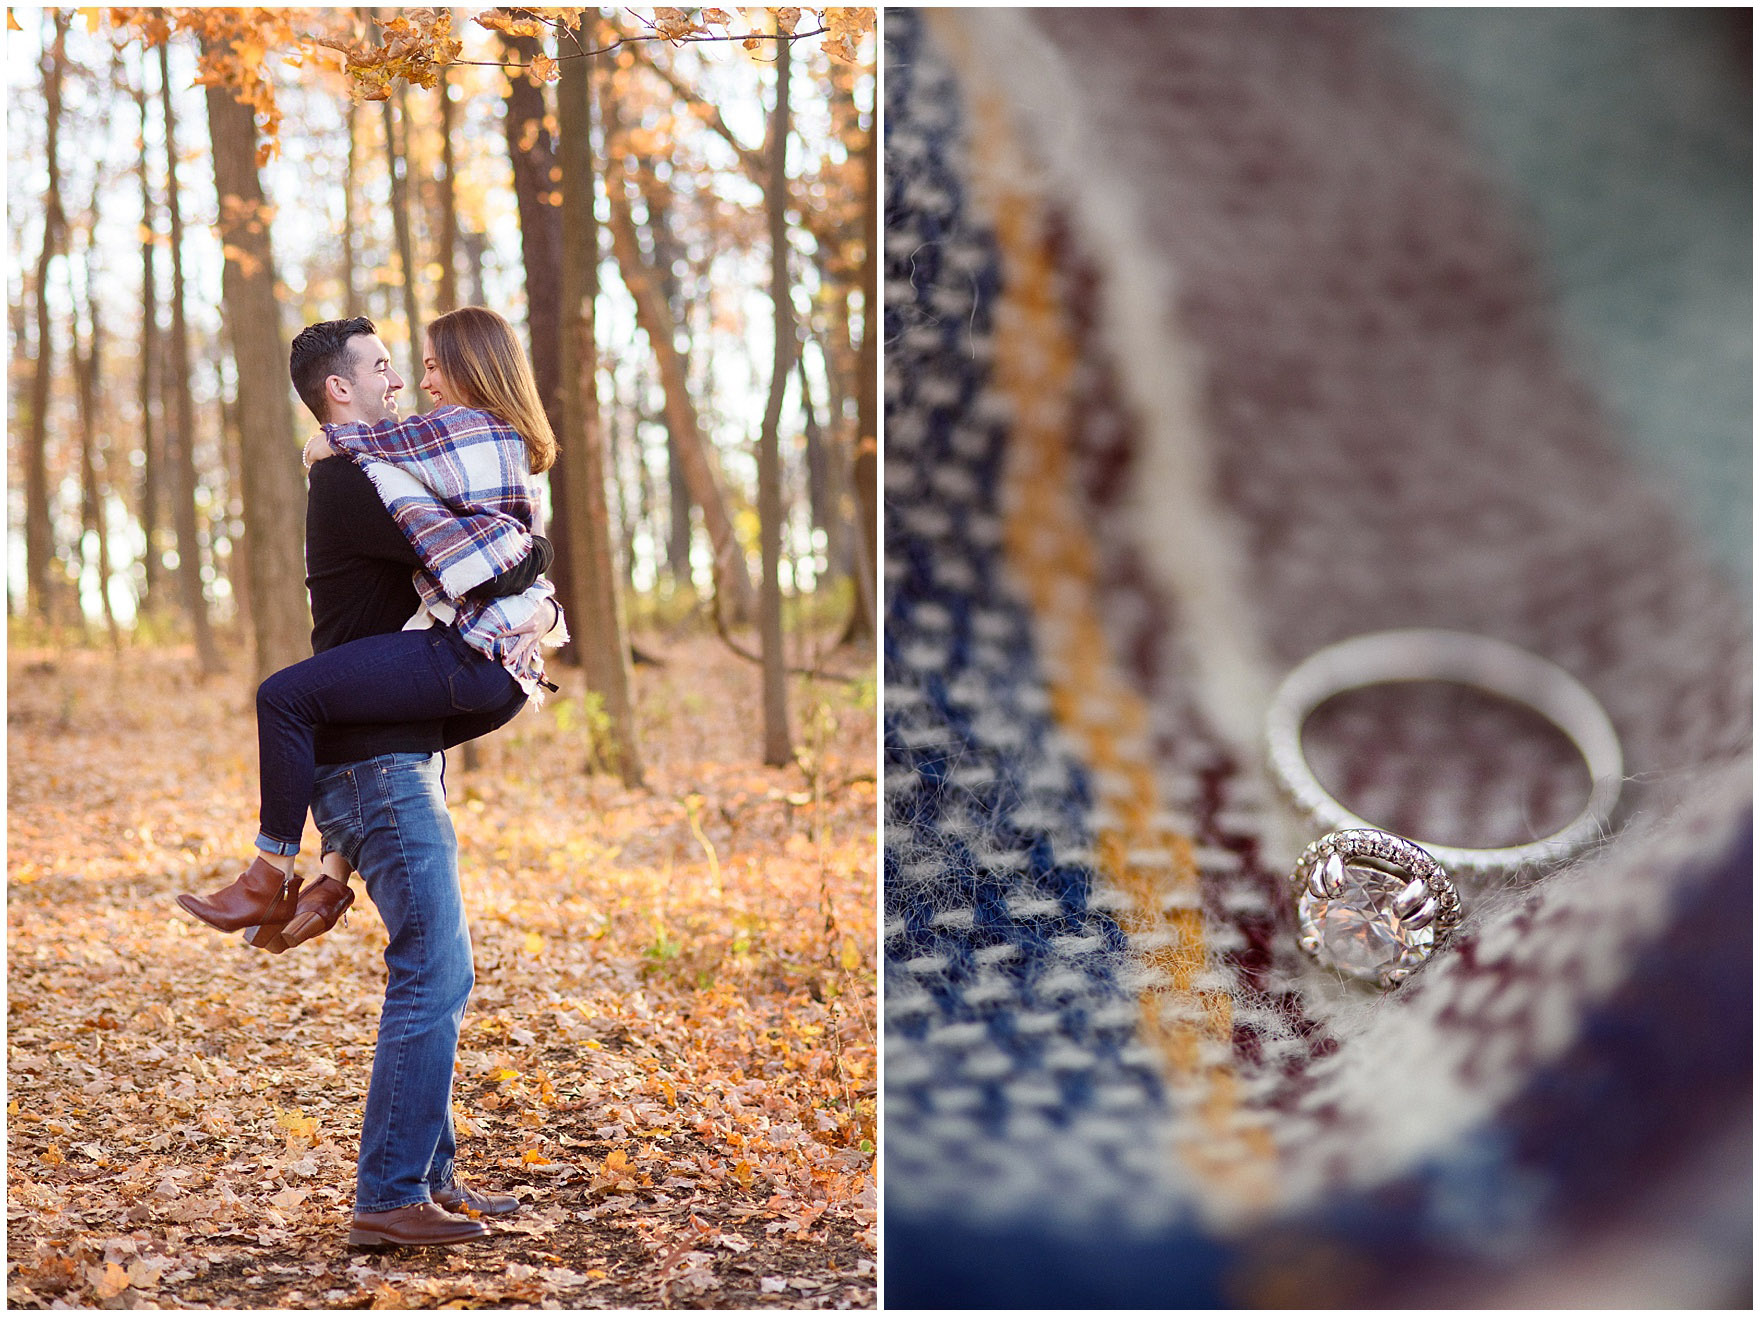 A closeup of a diamond engagement ring on a plaid blanket during a fall woods engagement session.